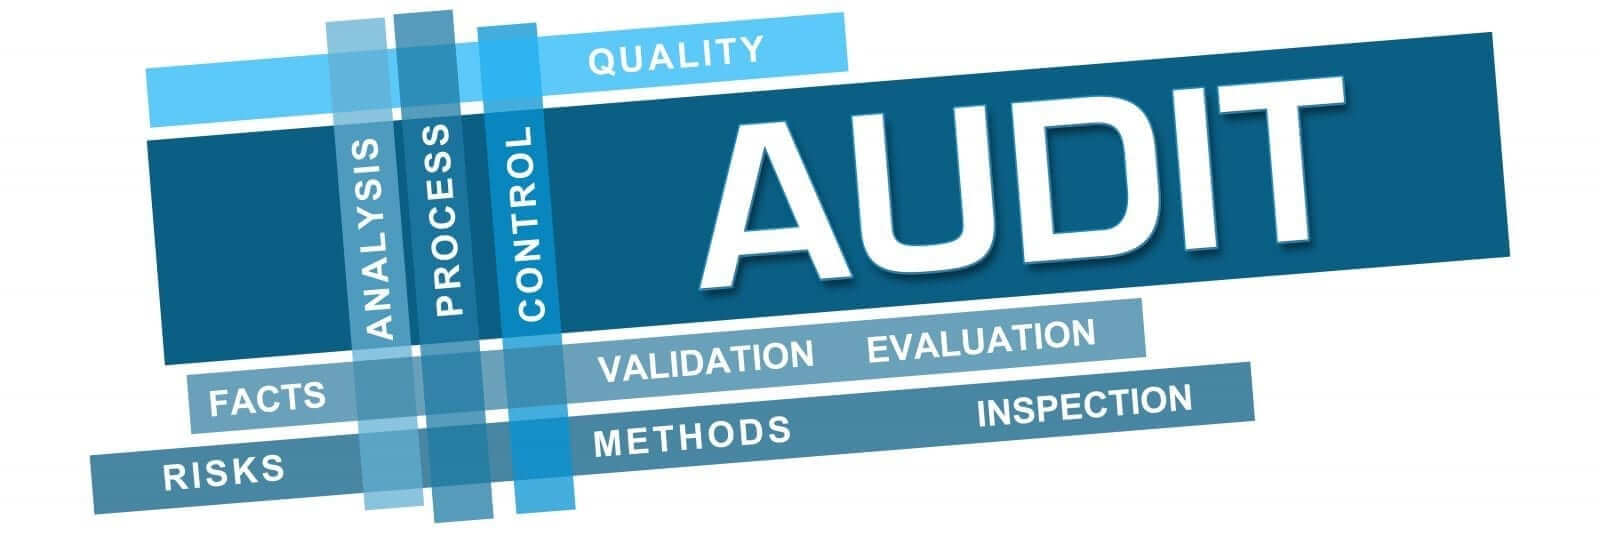 ISO Auditor Rating Test